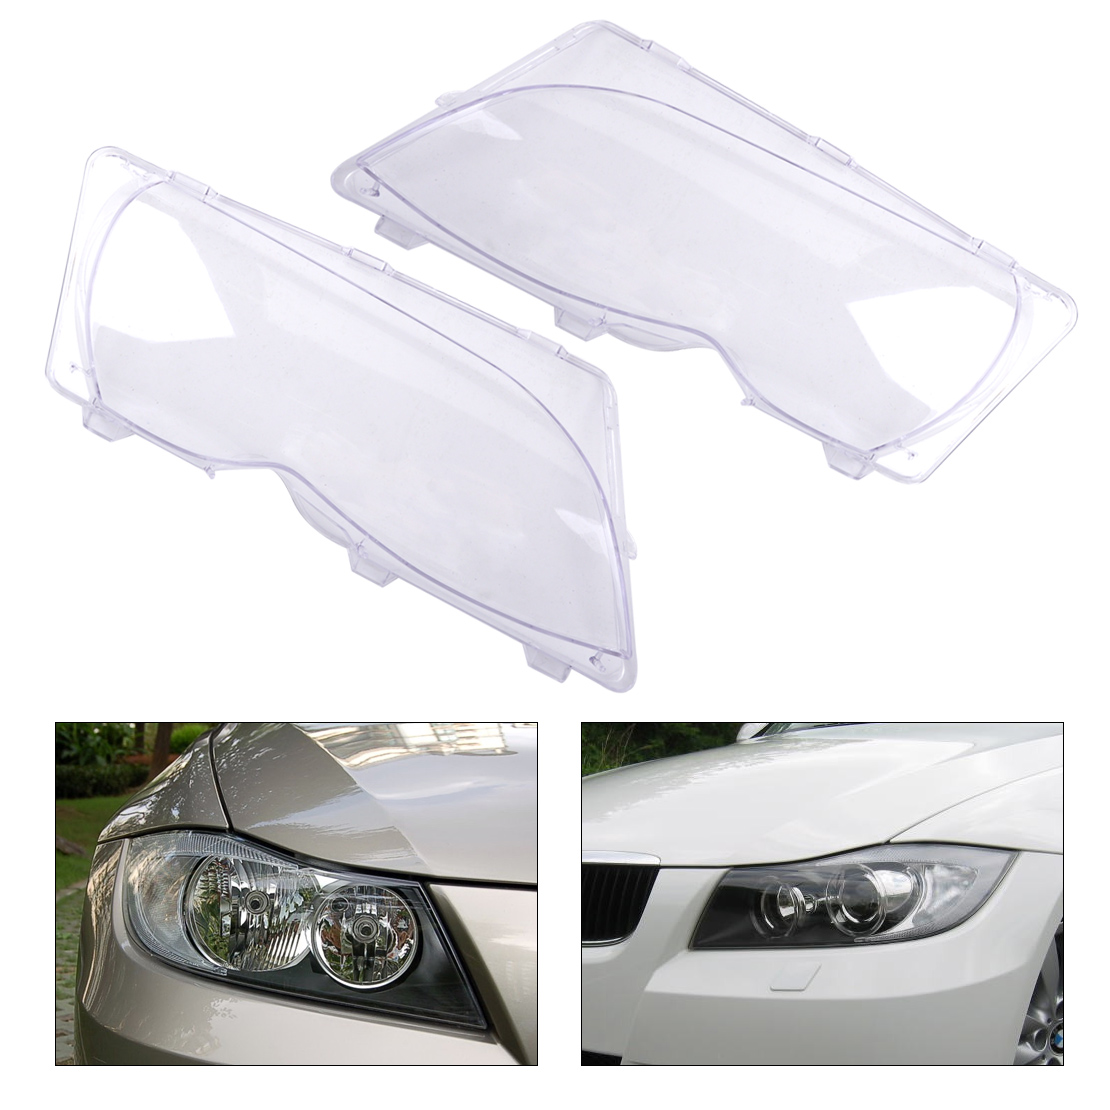 beler 2Pcs Left Right Headlight Lamp Lens Plastic Cover 63126924045 63126924046 for BMW E46 3 Series 325xi 330i 330xi 2001-2005 new 2pcs female right left vivid foot mannequin jewerly display model art sketch